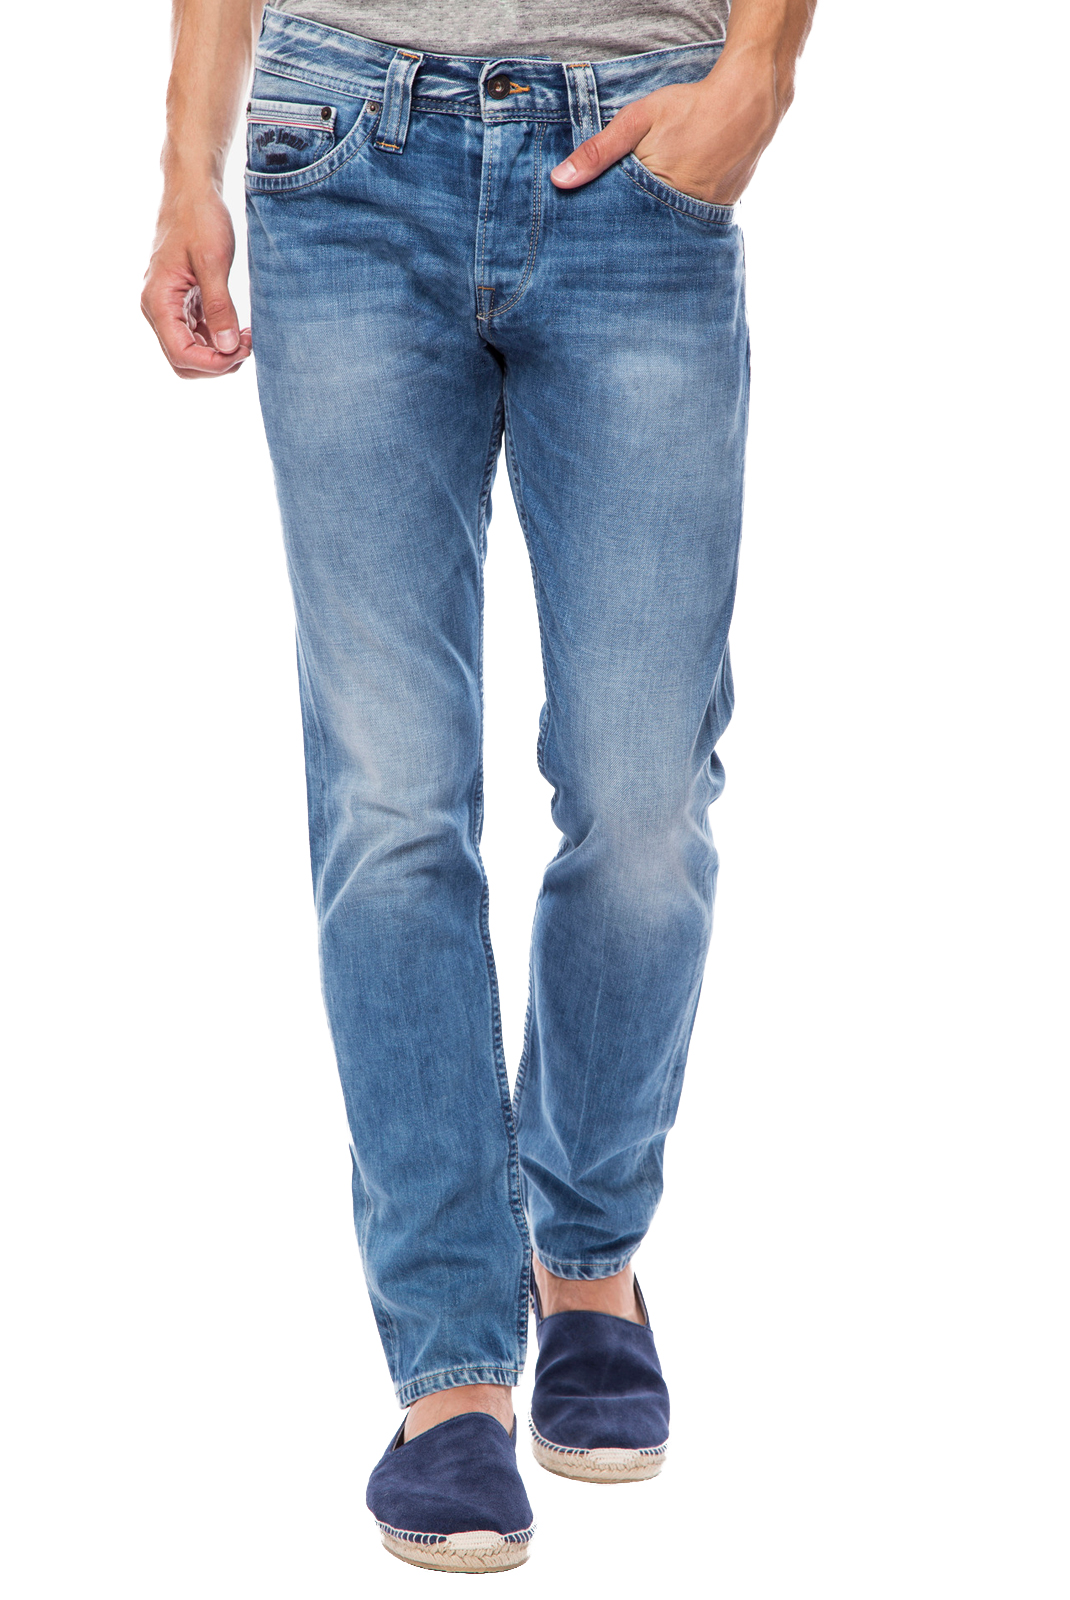 Jeans  Pepe jeans PM201445N621 LYLE 000 denim